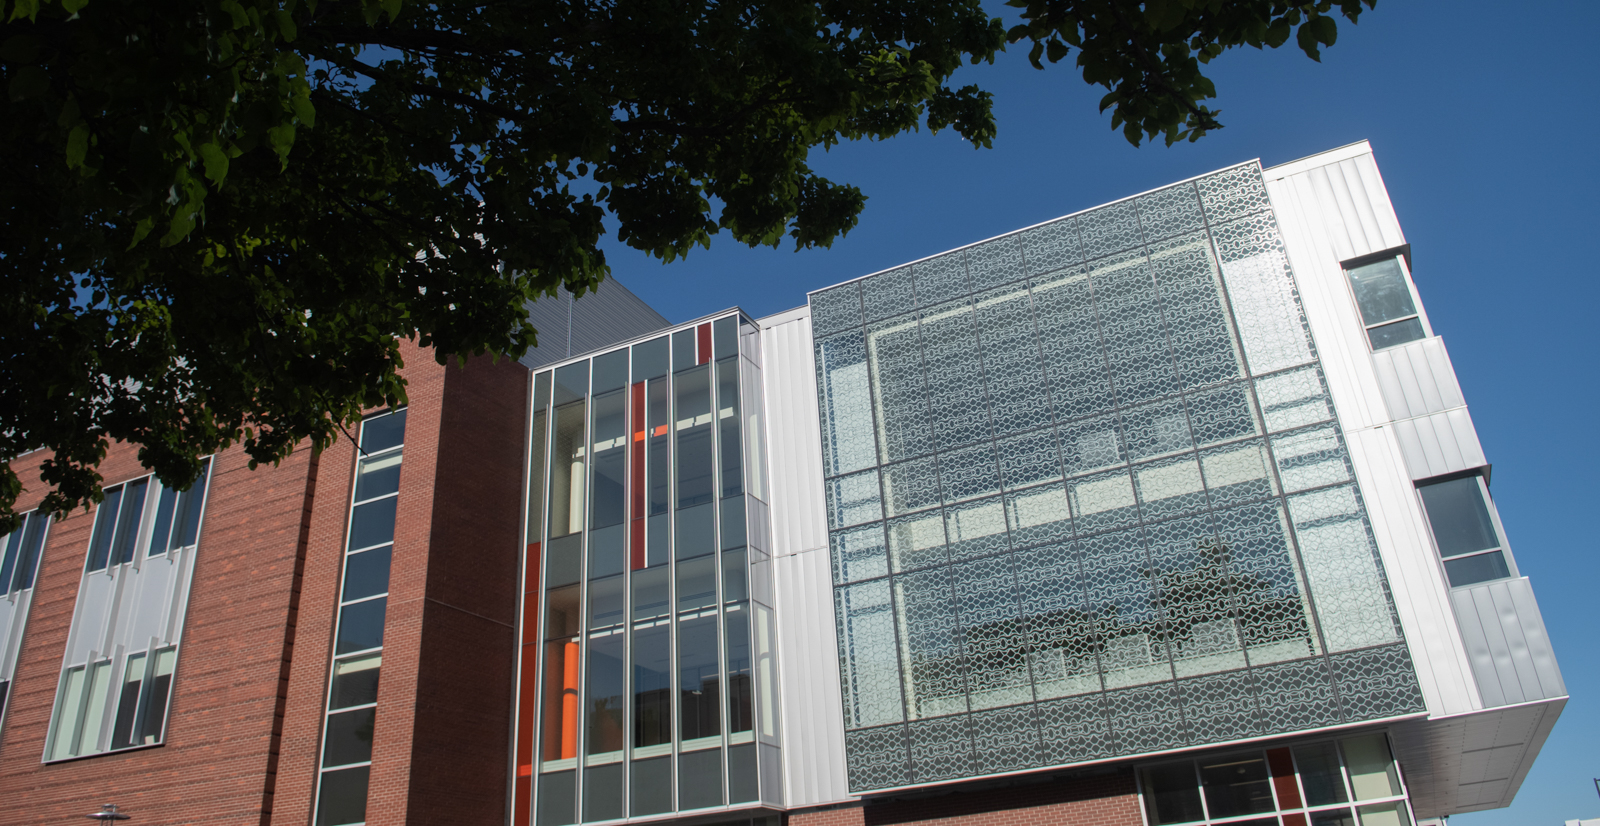 Side view of Materials Research building